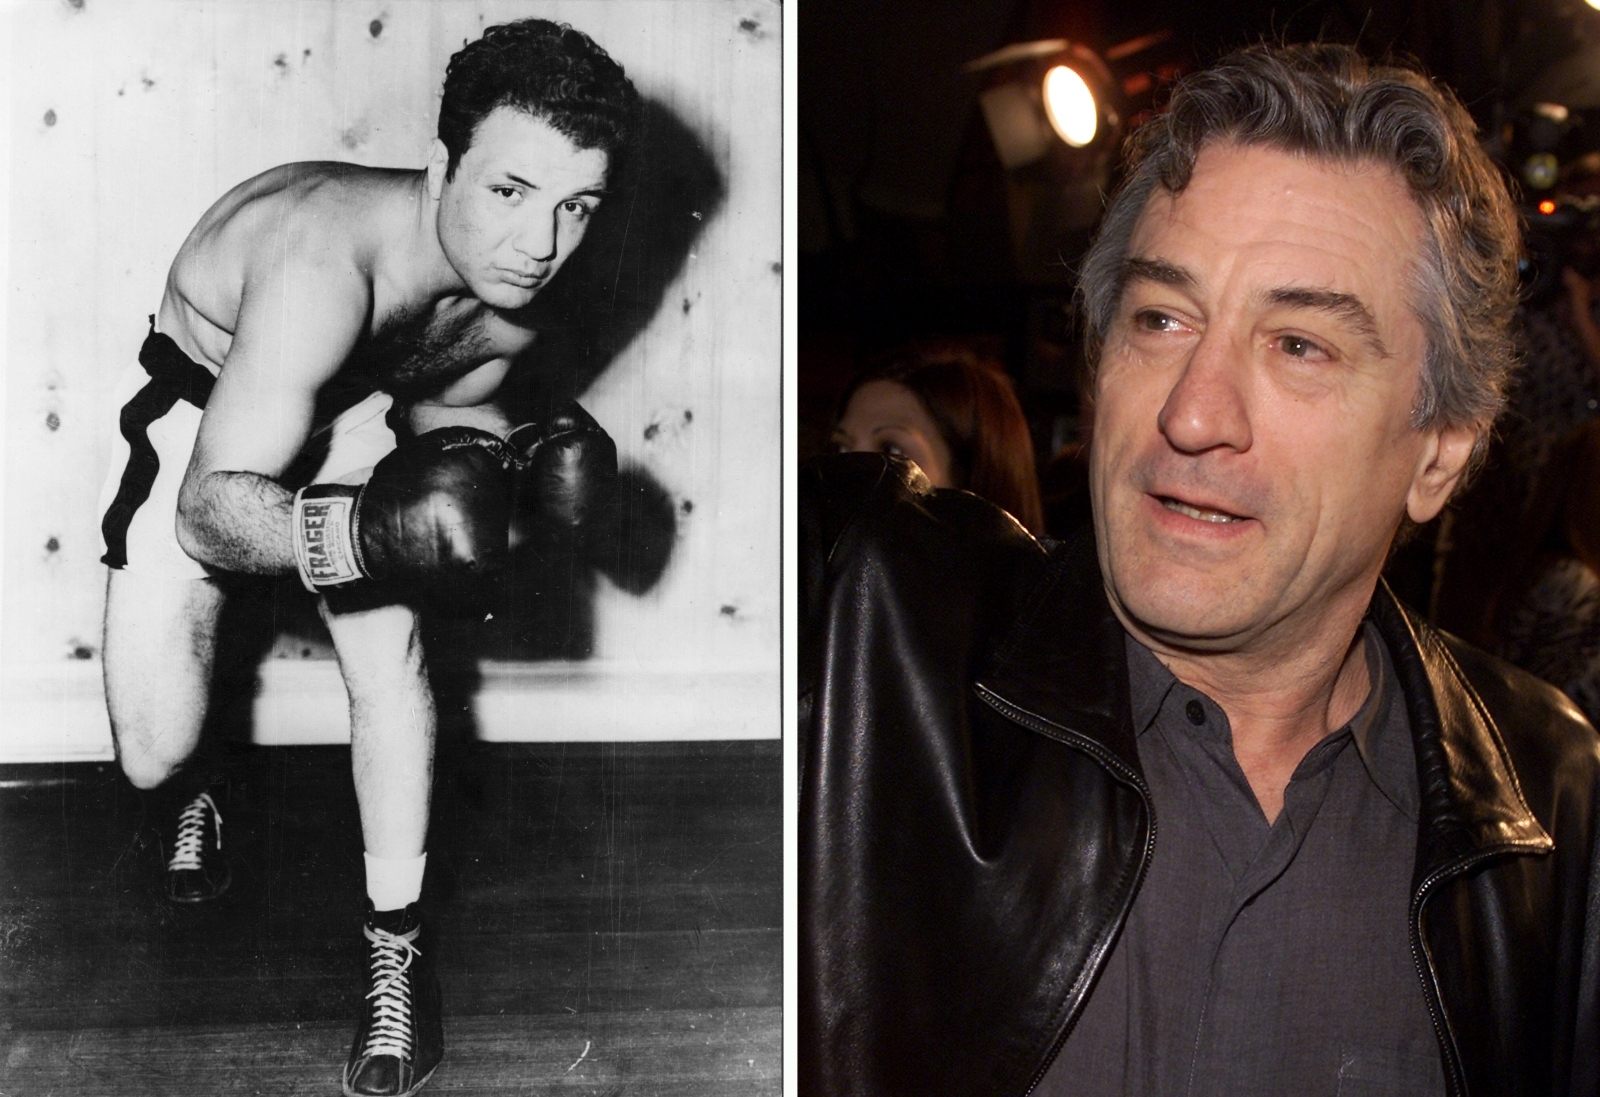 Jake LaMotta, boxing legend and inspiration for 'Raging Bull,' dead at 95